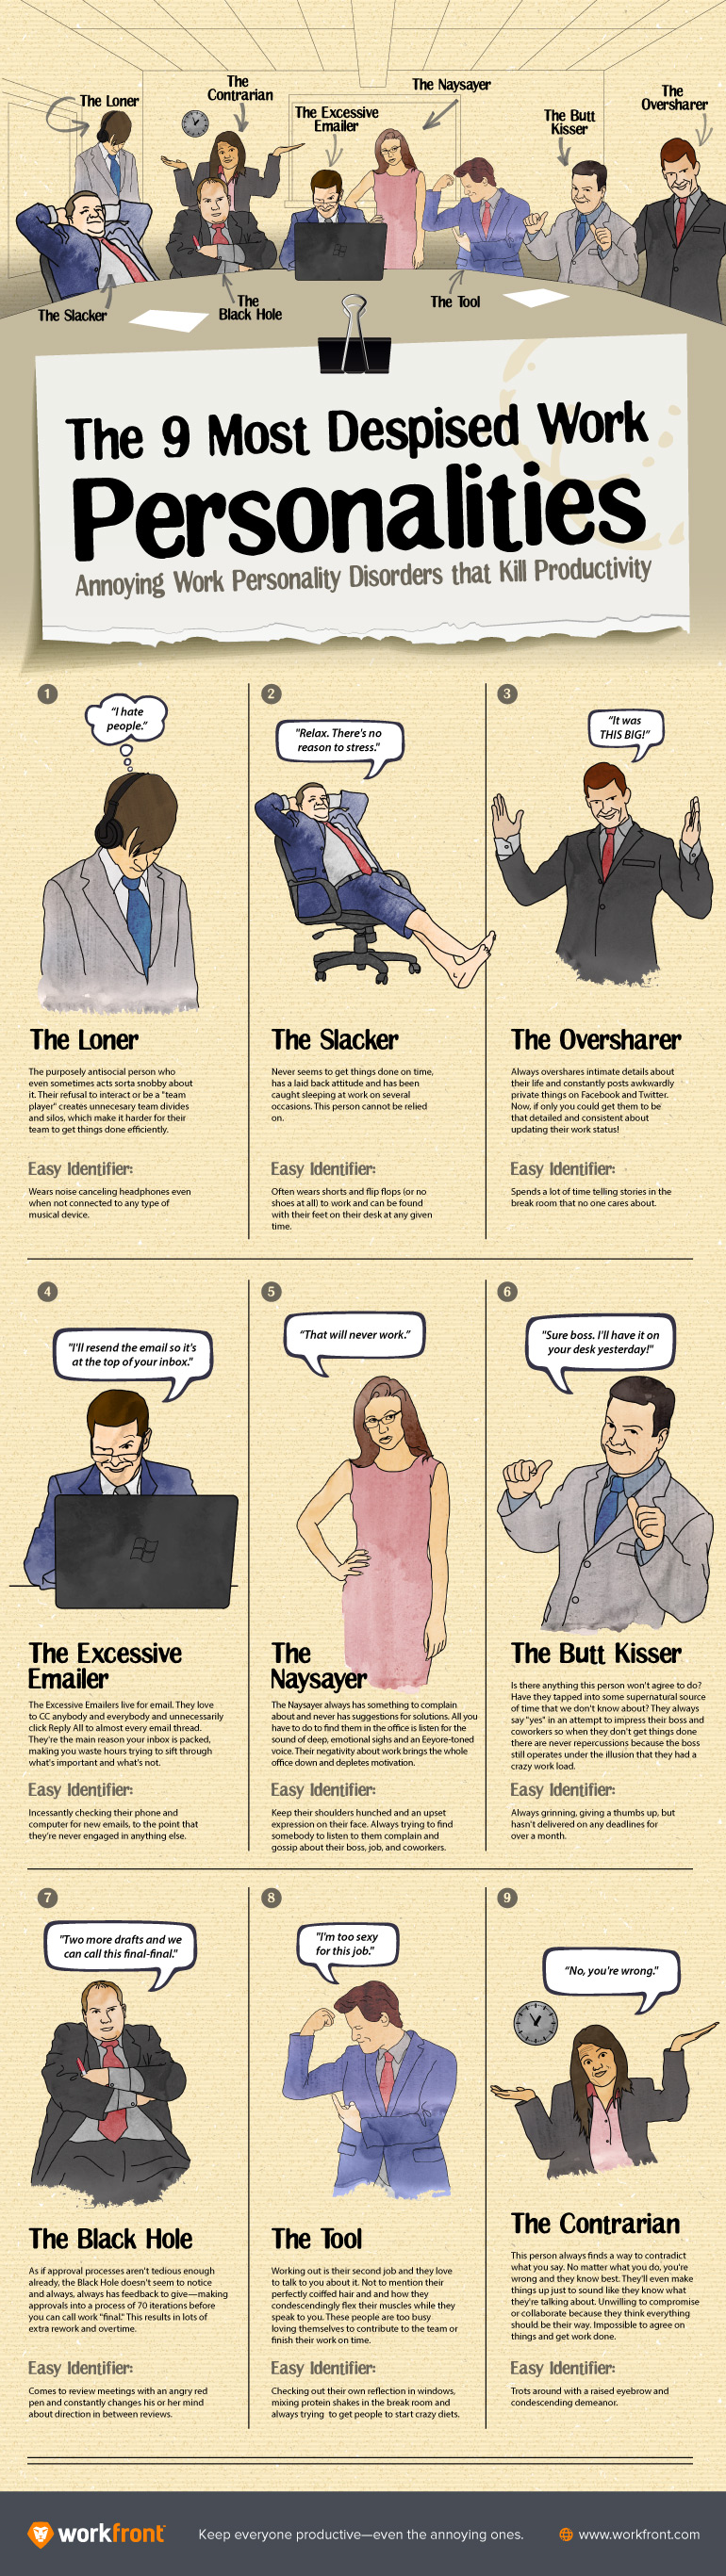 top-despised_work_personalities-infographic